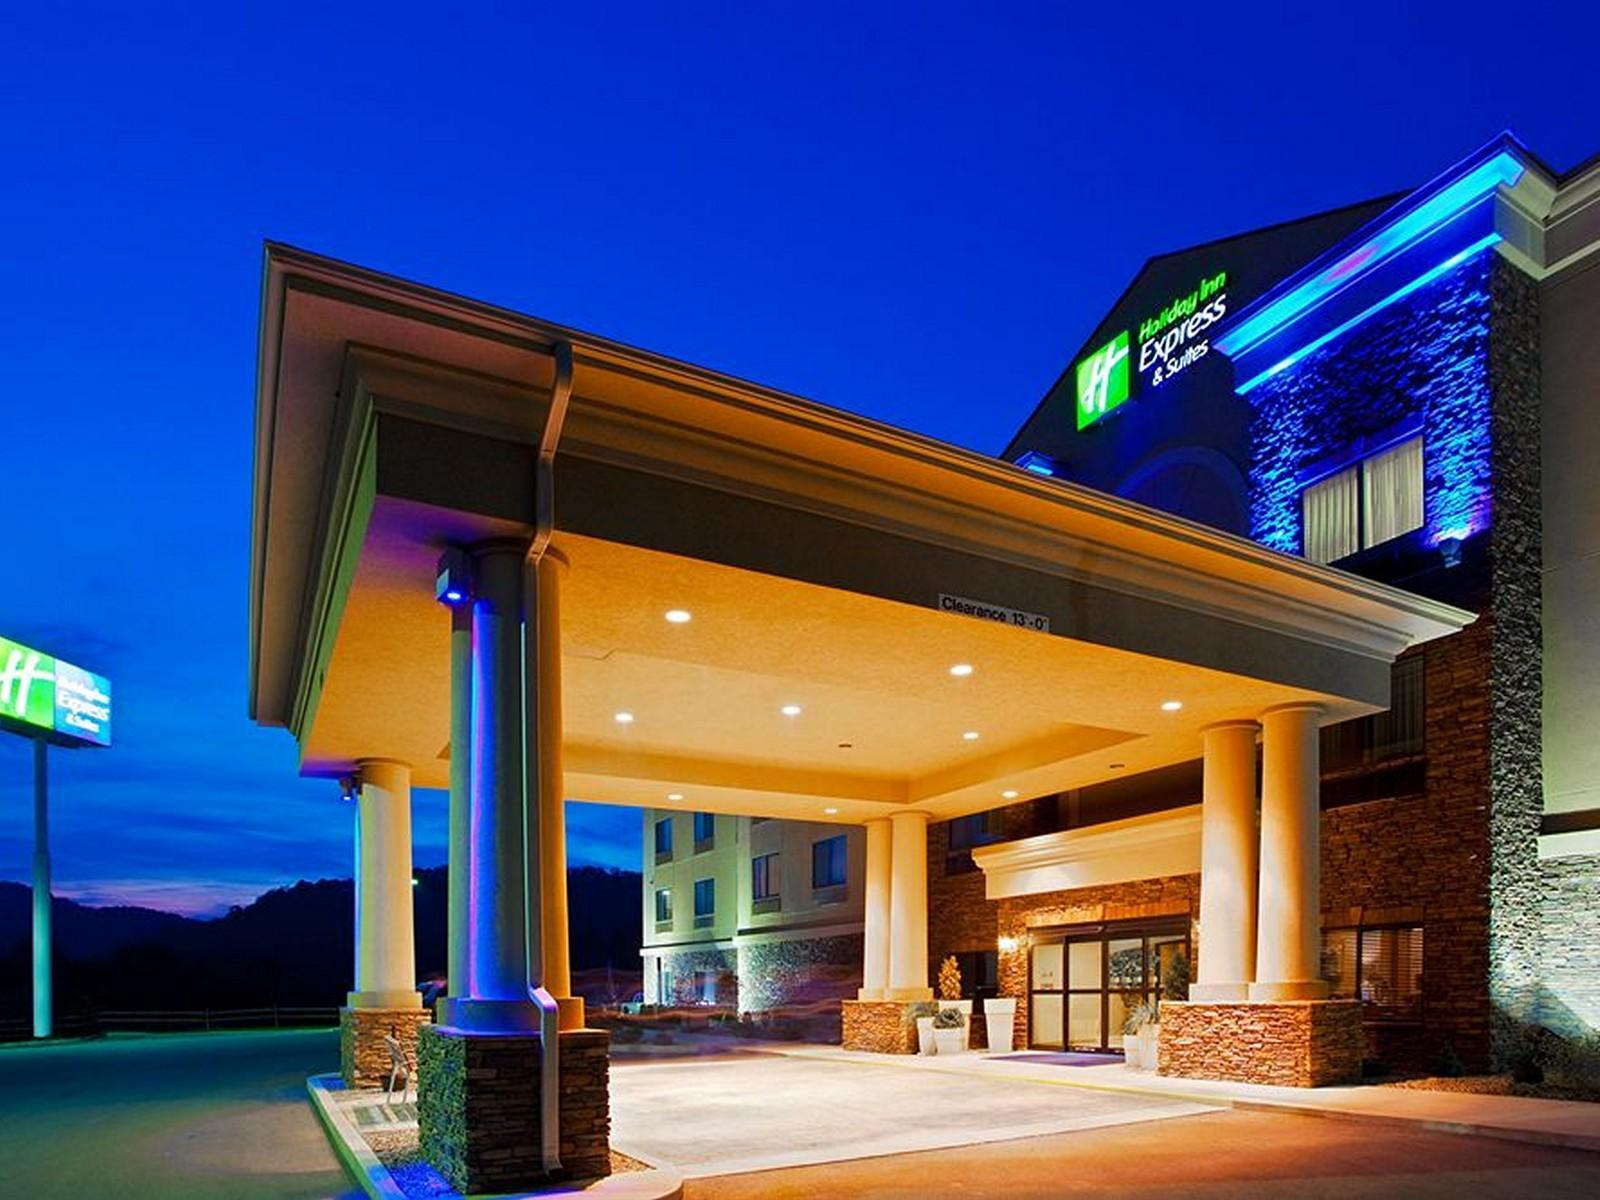 Holiday Inn Express Hotel And Suites Weston